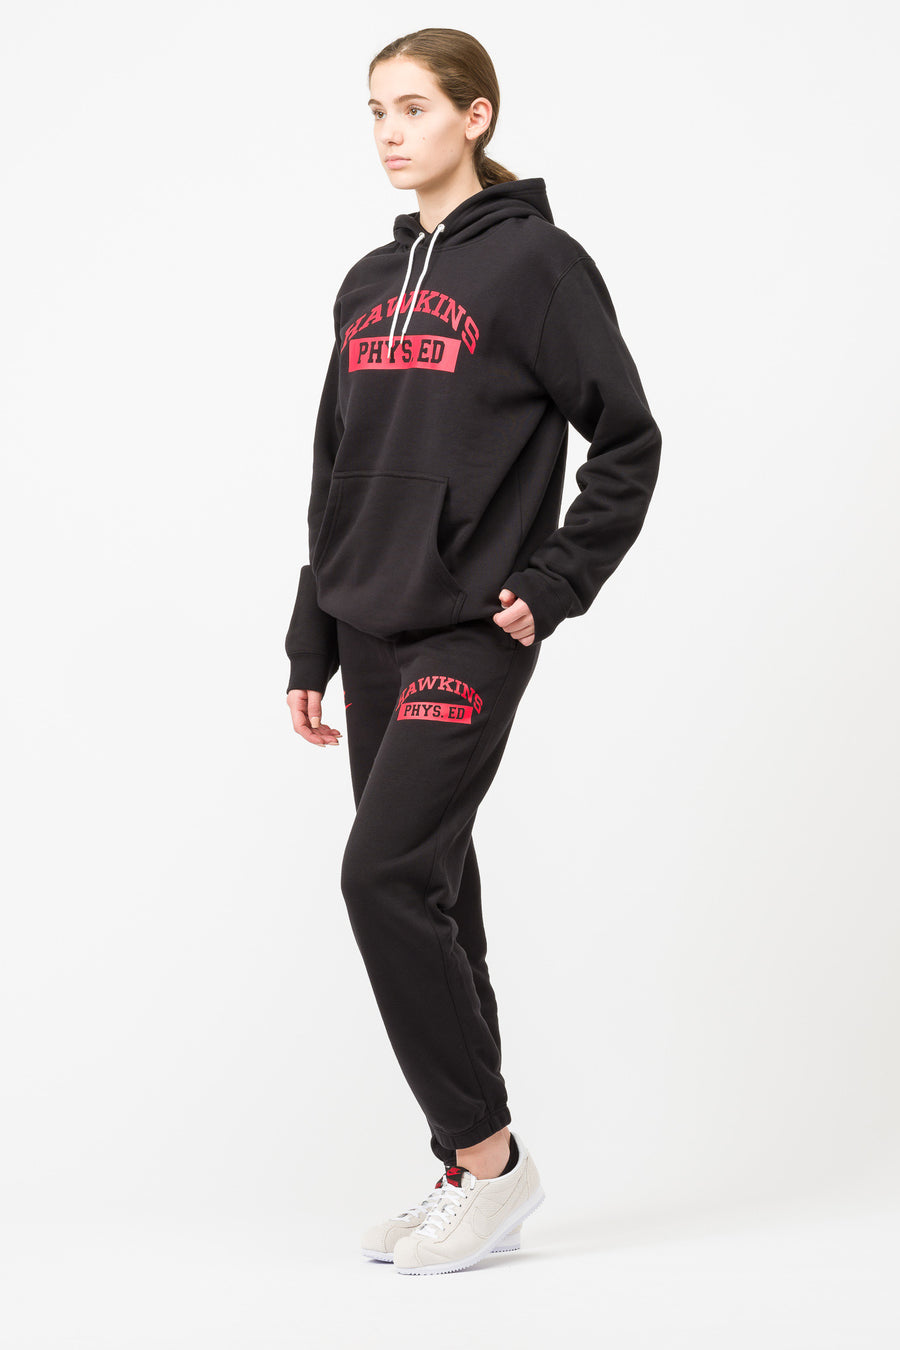 Stranger Things Hawkins Phys Ed Hoodie in Black/Red